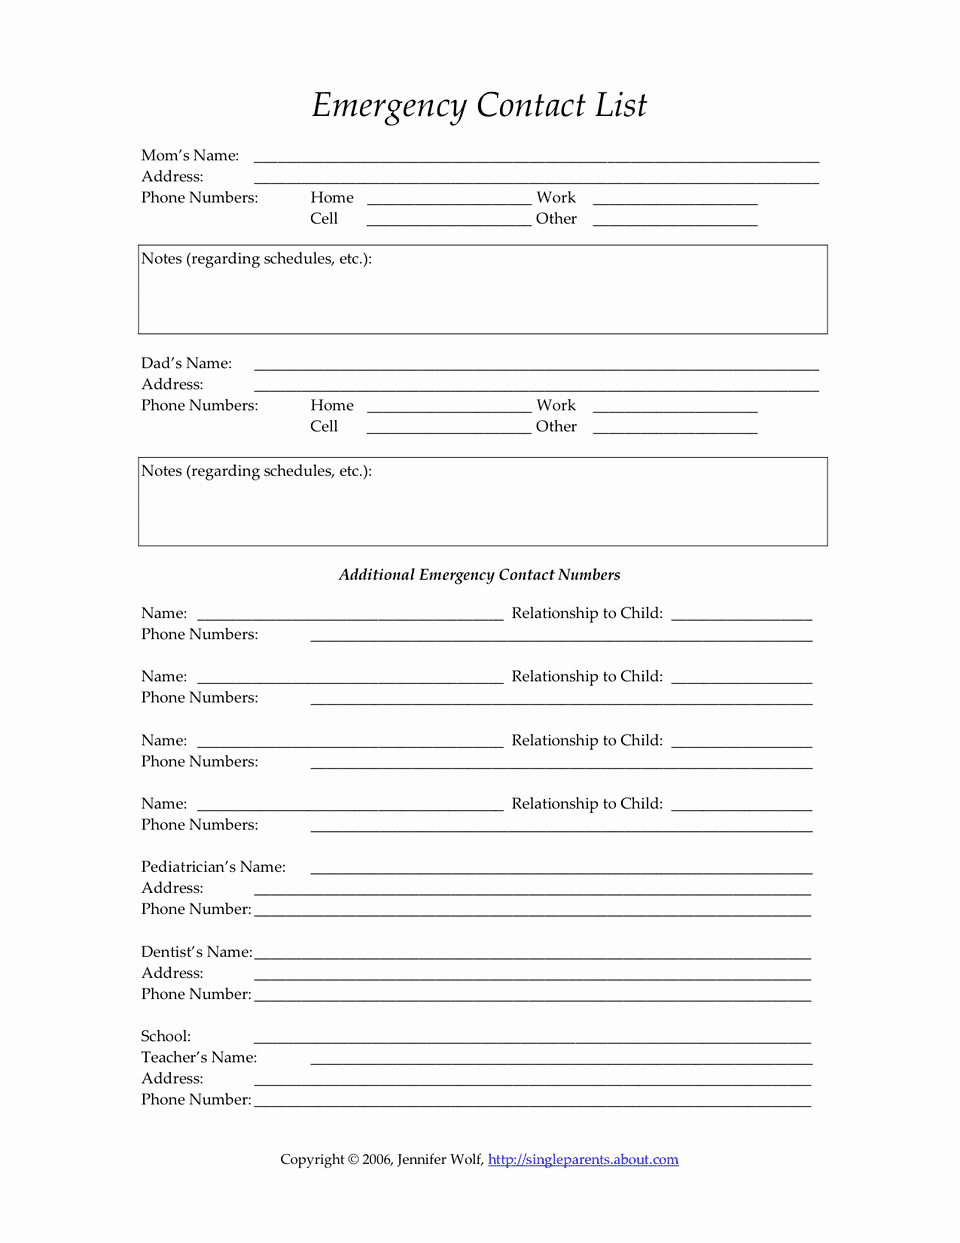 Emergency Contact Sheet for Nanny Inspirational form Templates Child Care Emergency Contact form Child